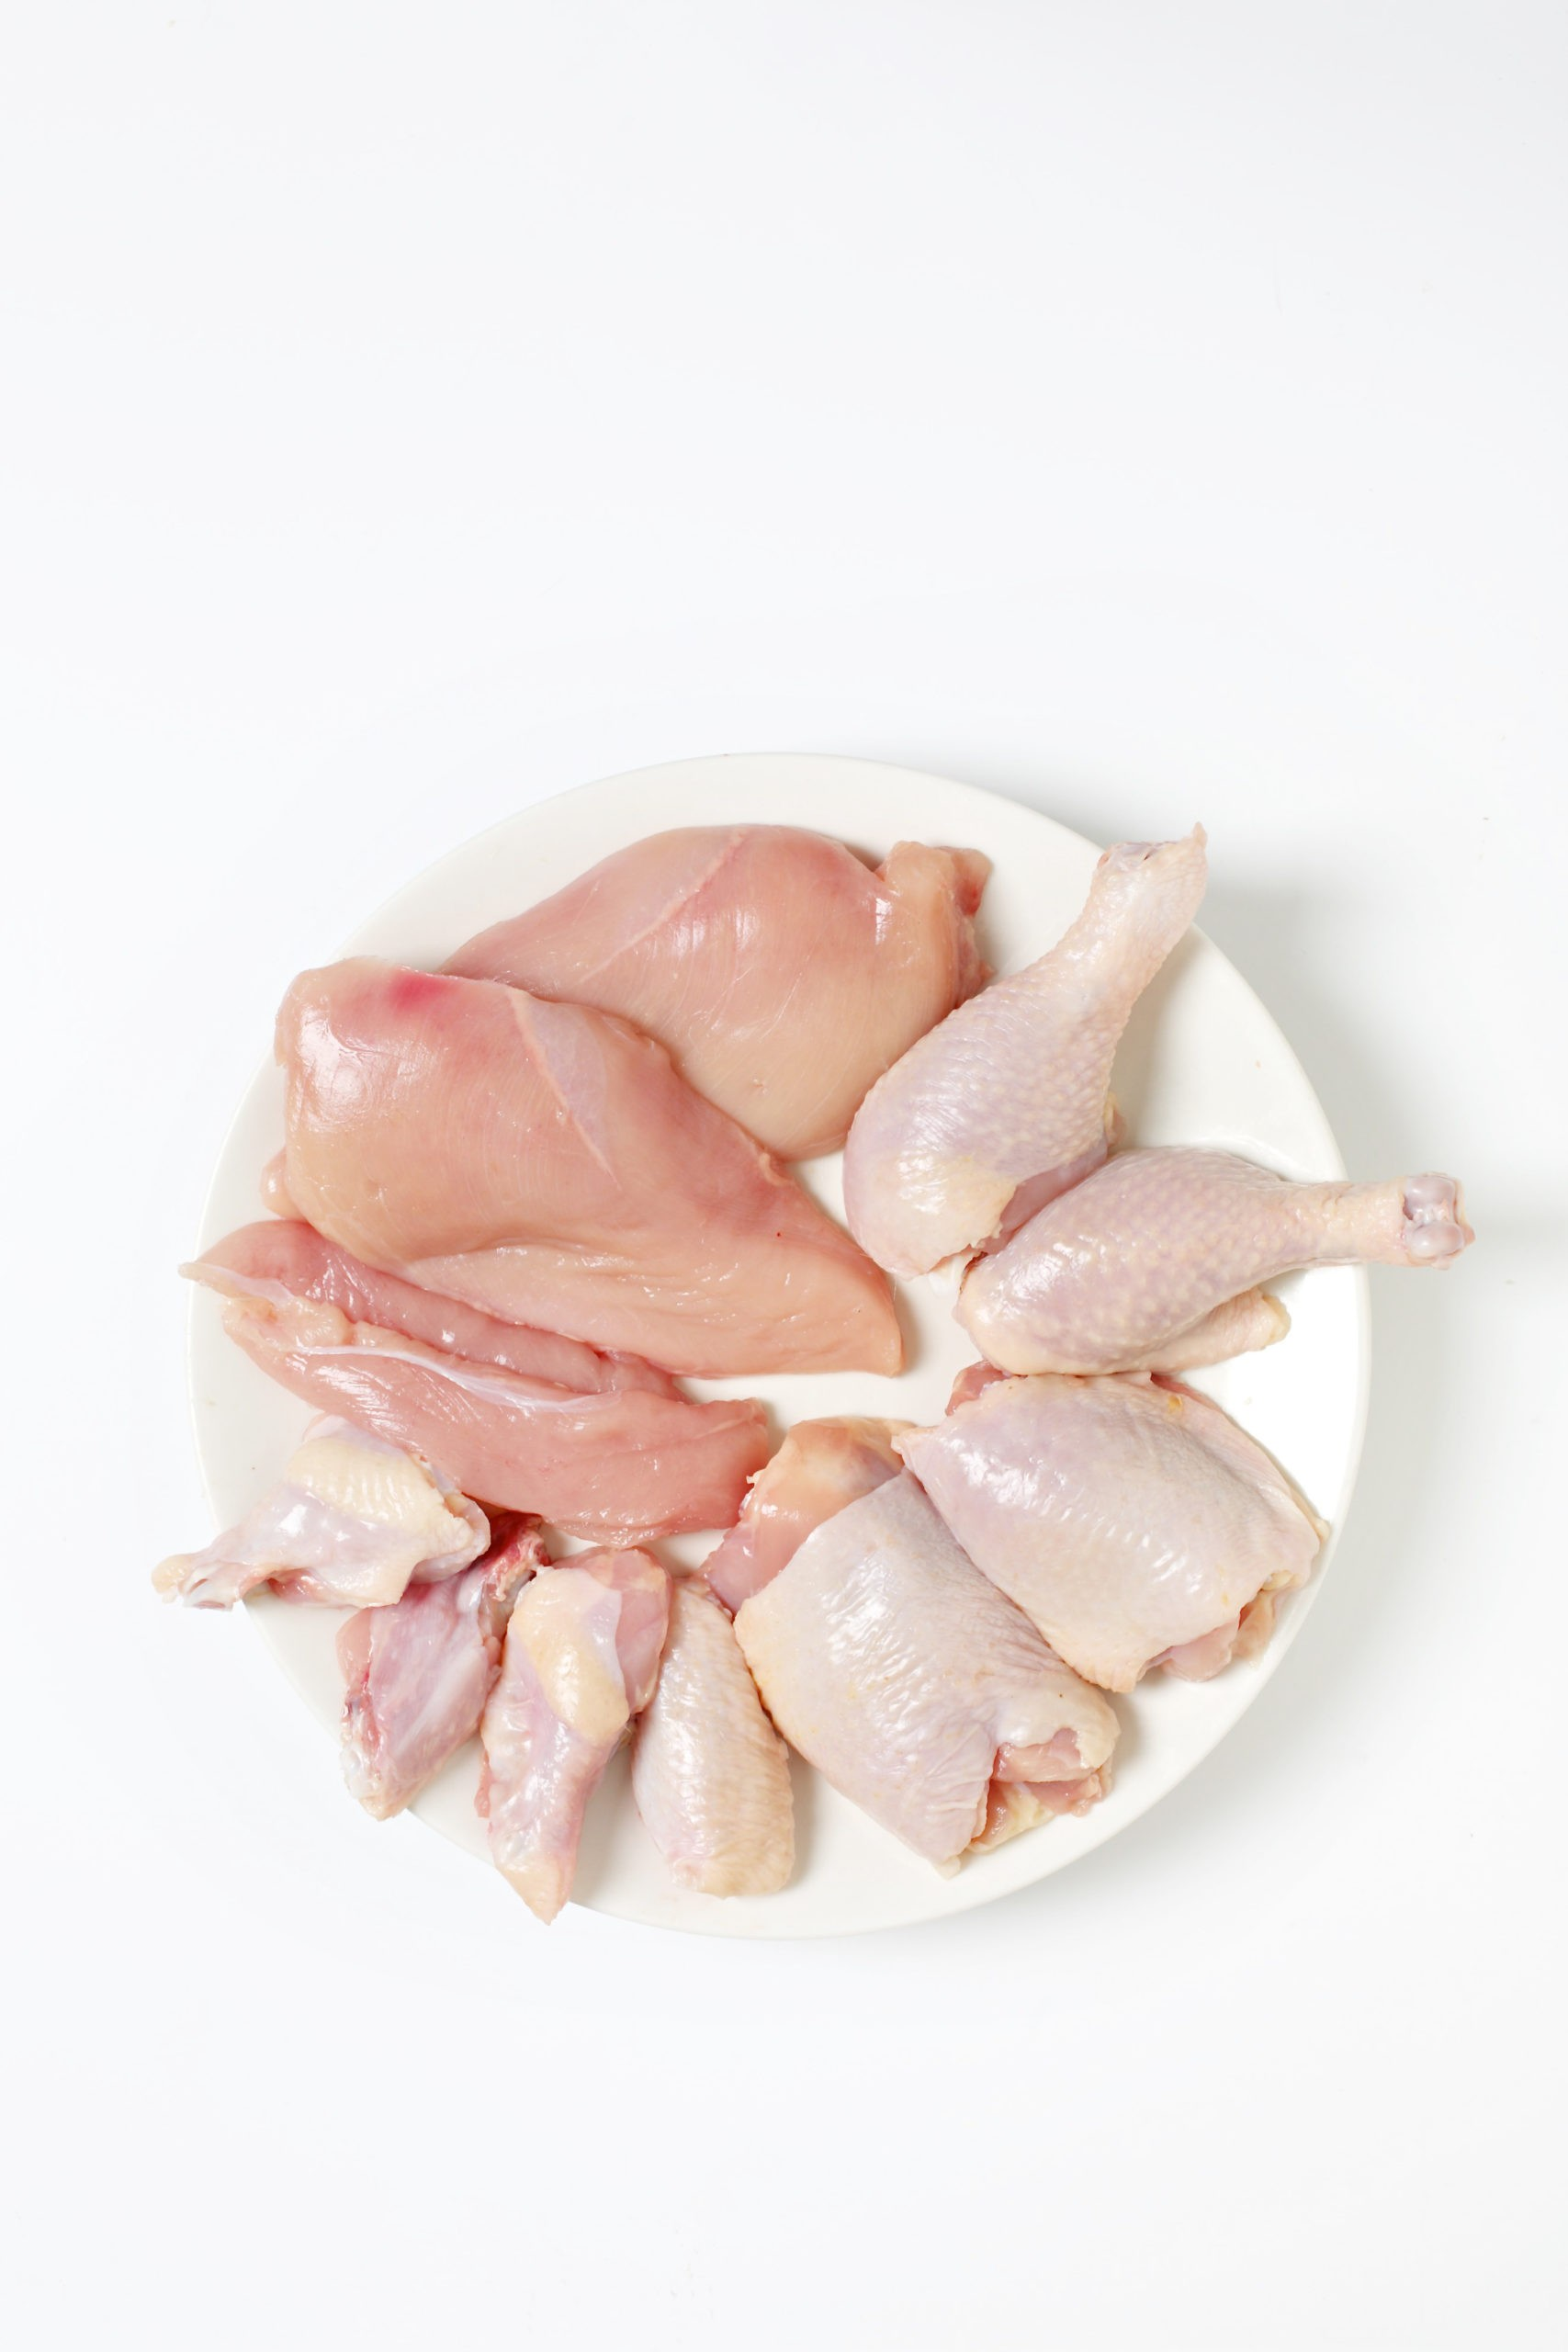 Fish/Poultry/Meat